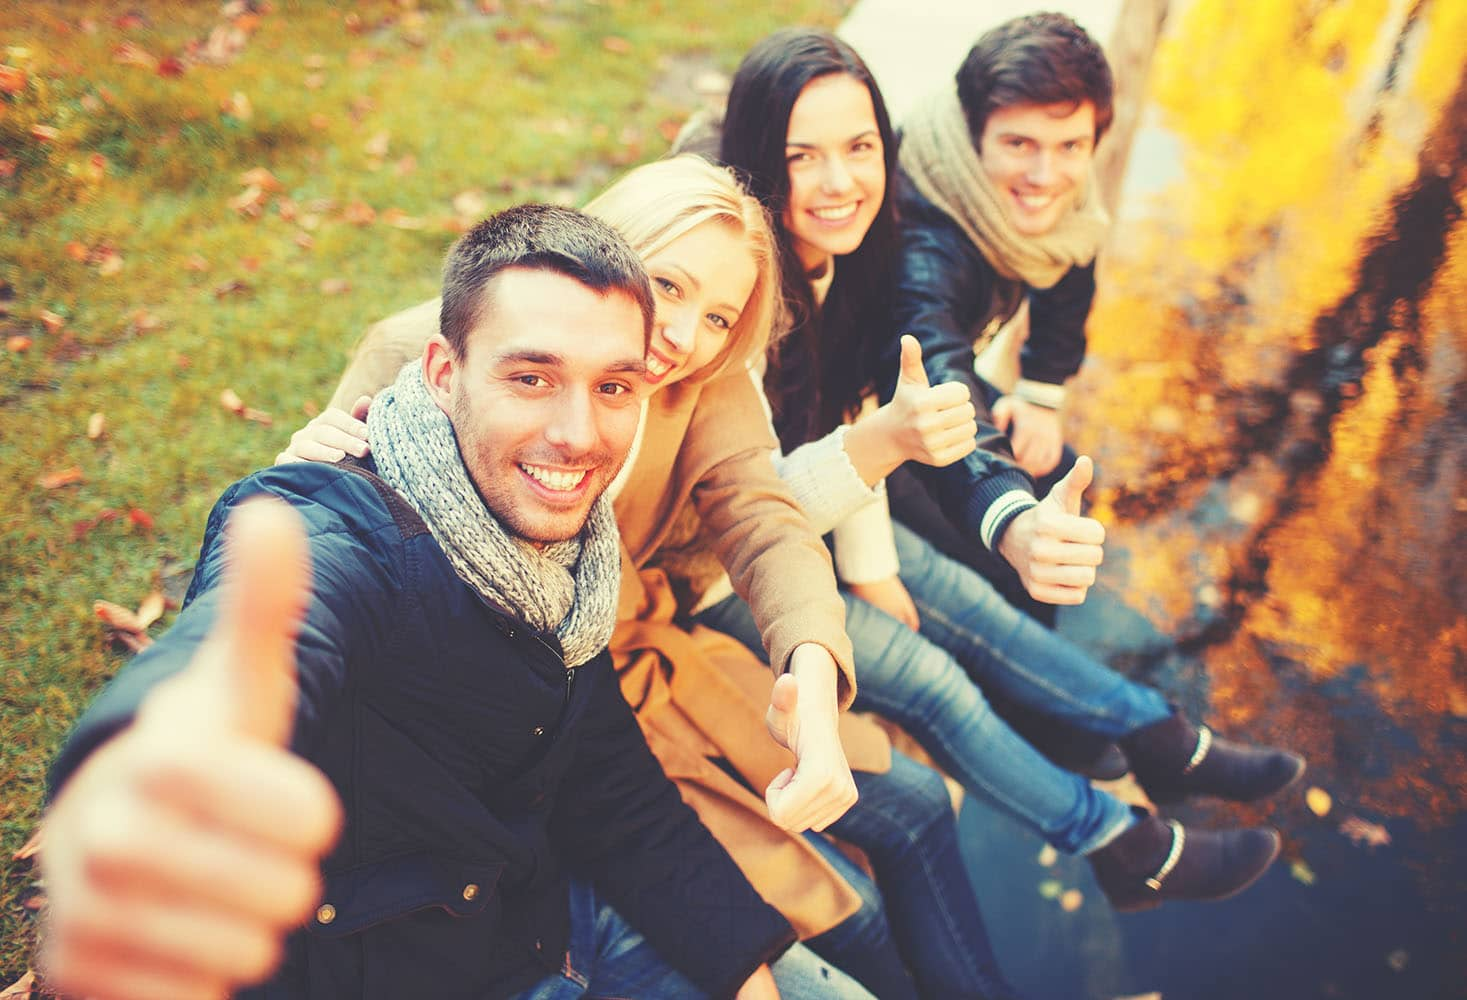 Safe, Fun and Sober Activities for This Fall